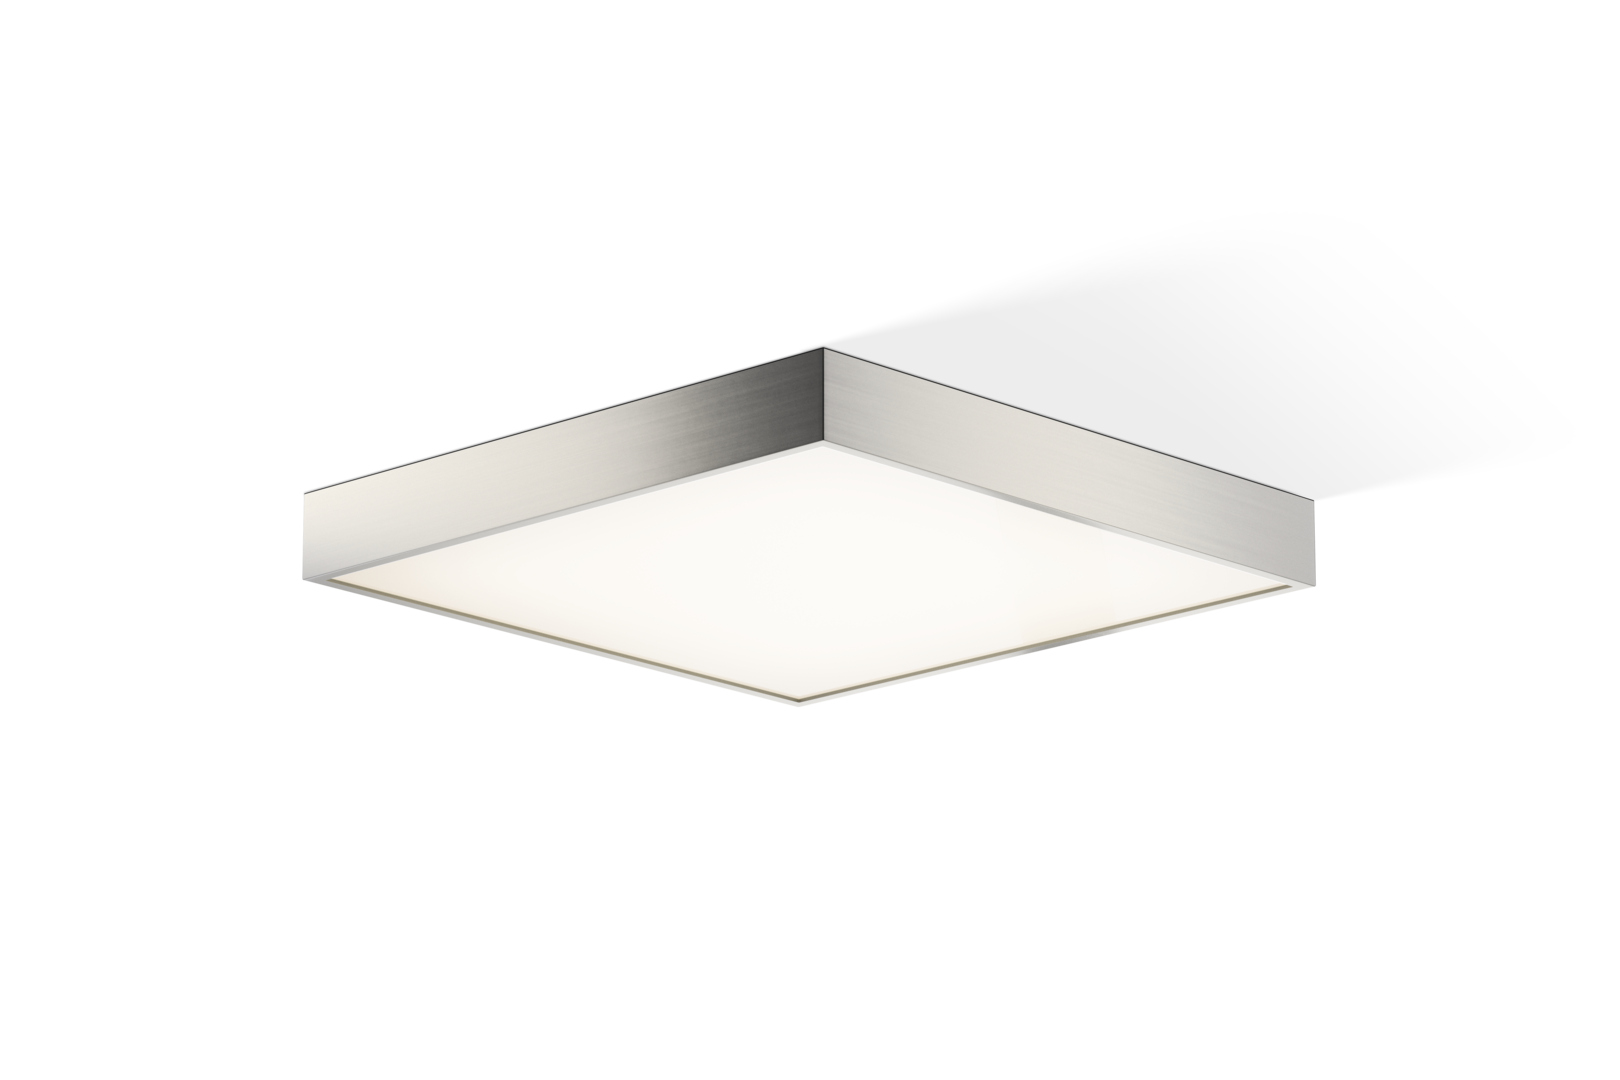 Decor Walther 0218934 DW-Cut 40 N LED Ceiling Light - Nickel Satined